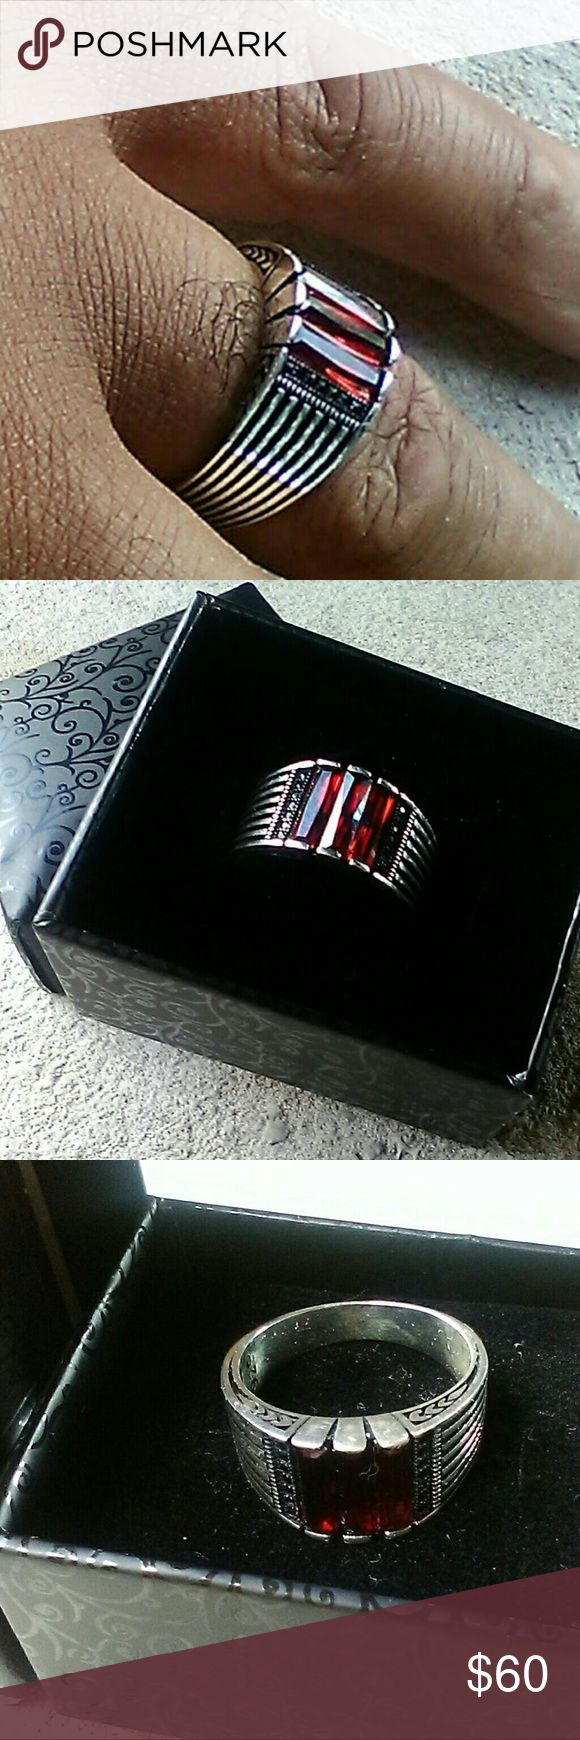 Turkish Handmade Ottoman Style 925 Sterling Silver Turkish Handmade Ottoman Style 925 Sterling Silver Garnet Stone Men's Ring Sz 10  With box and cushion pillow for ring. Handmade Accessories Jewelry